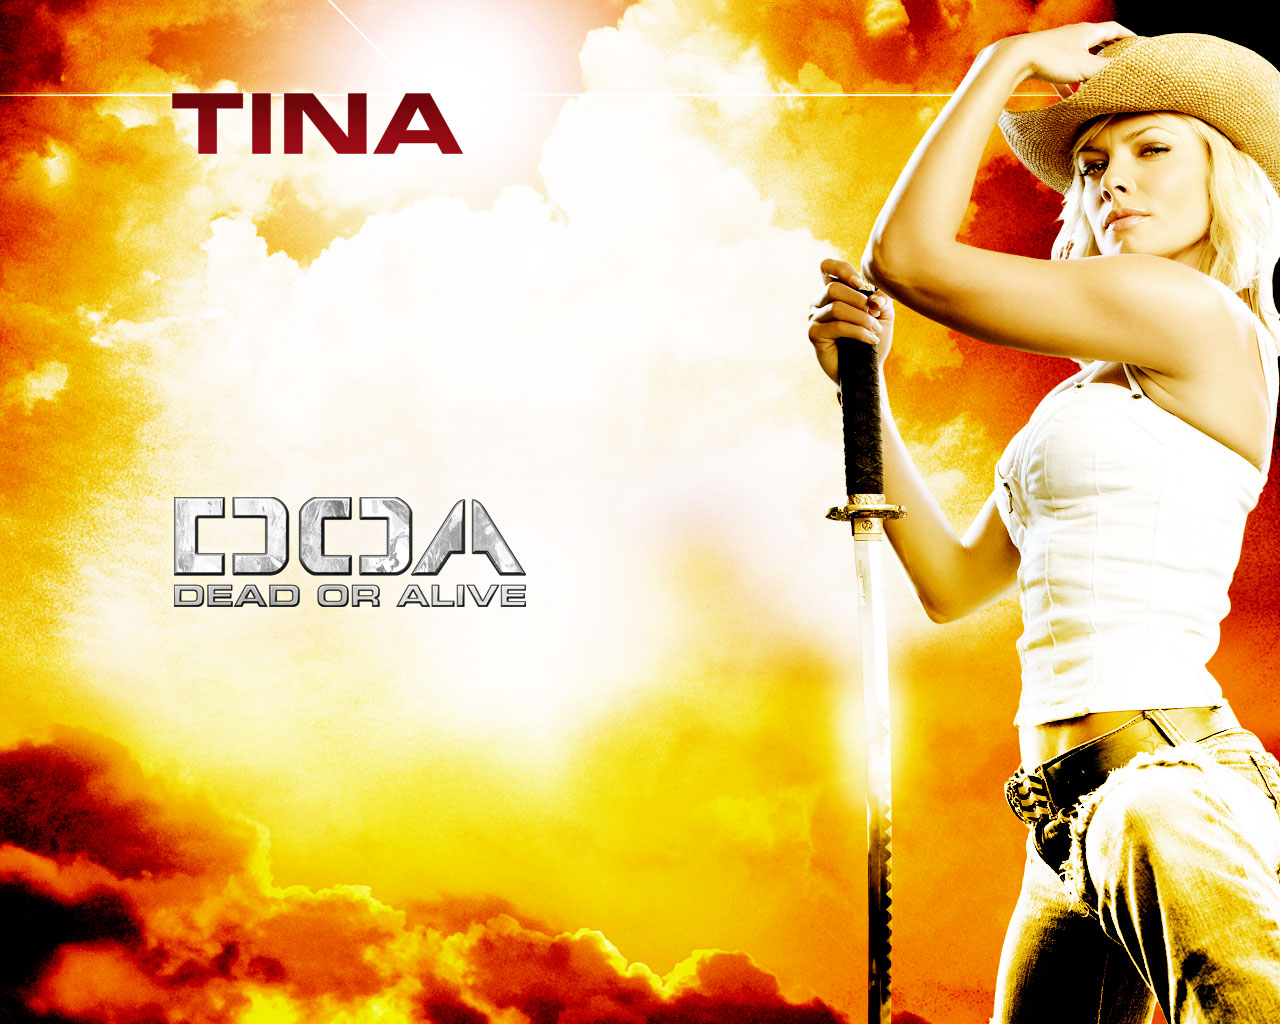 Free Download Tina Doa Dead Or Alive Movie Wallpaper 1280x1024